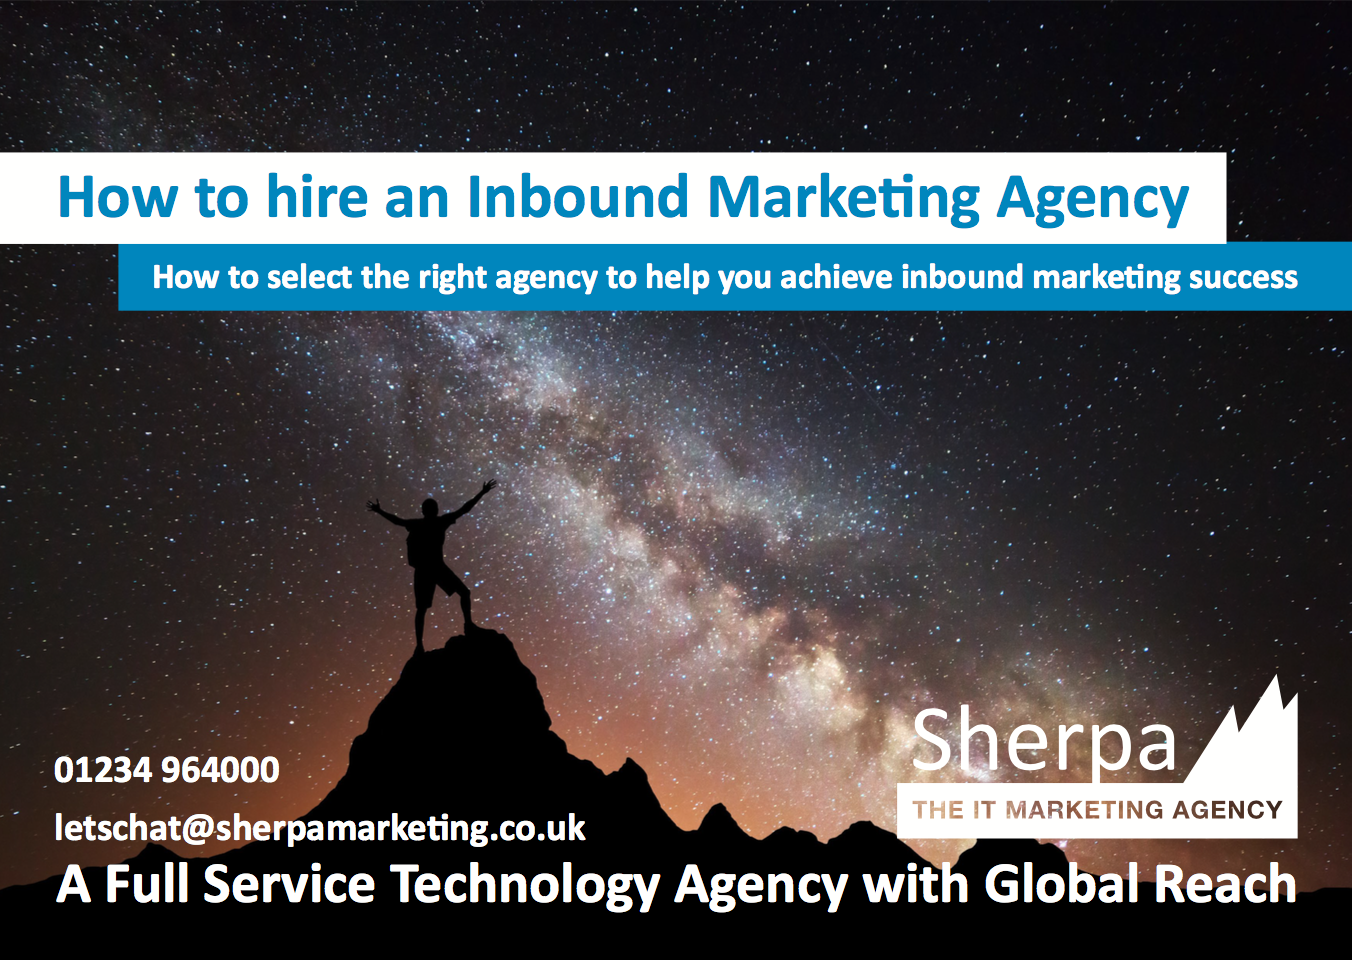 How to hire an inbound marketing agency